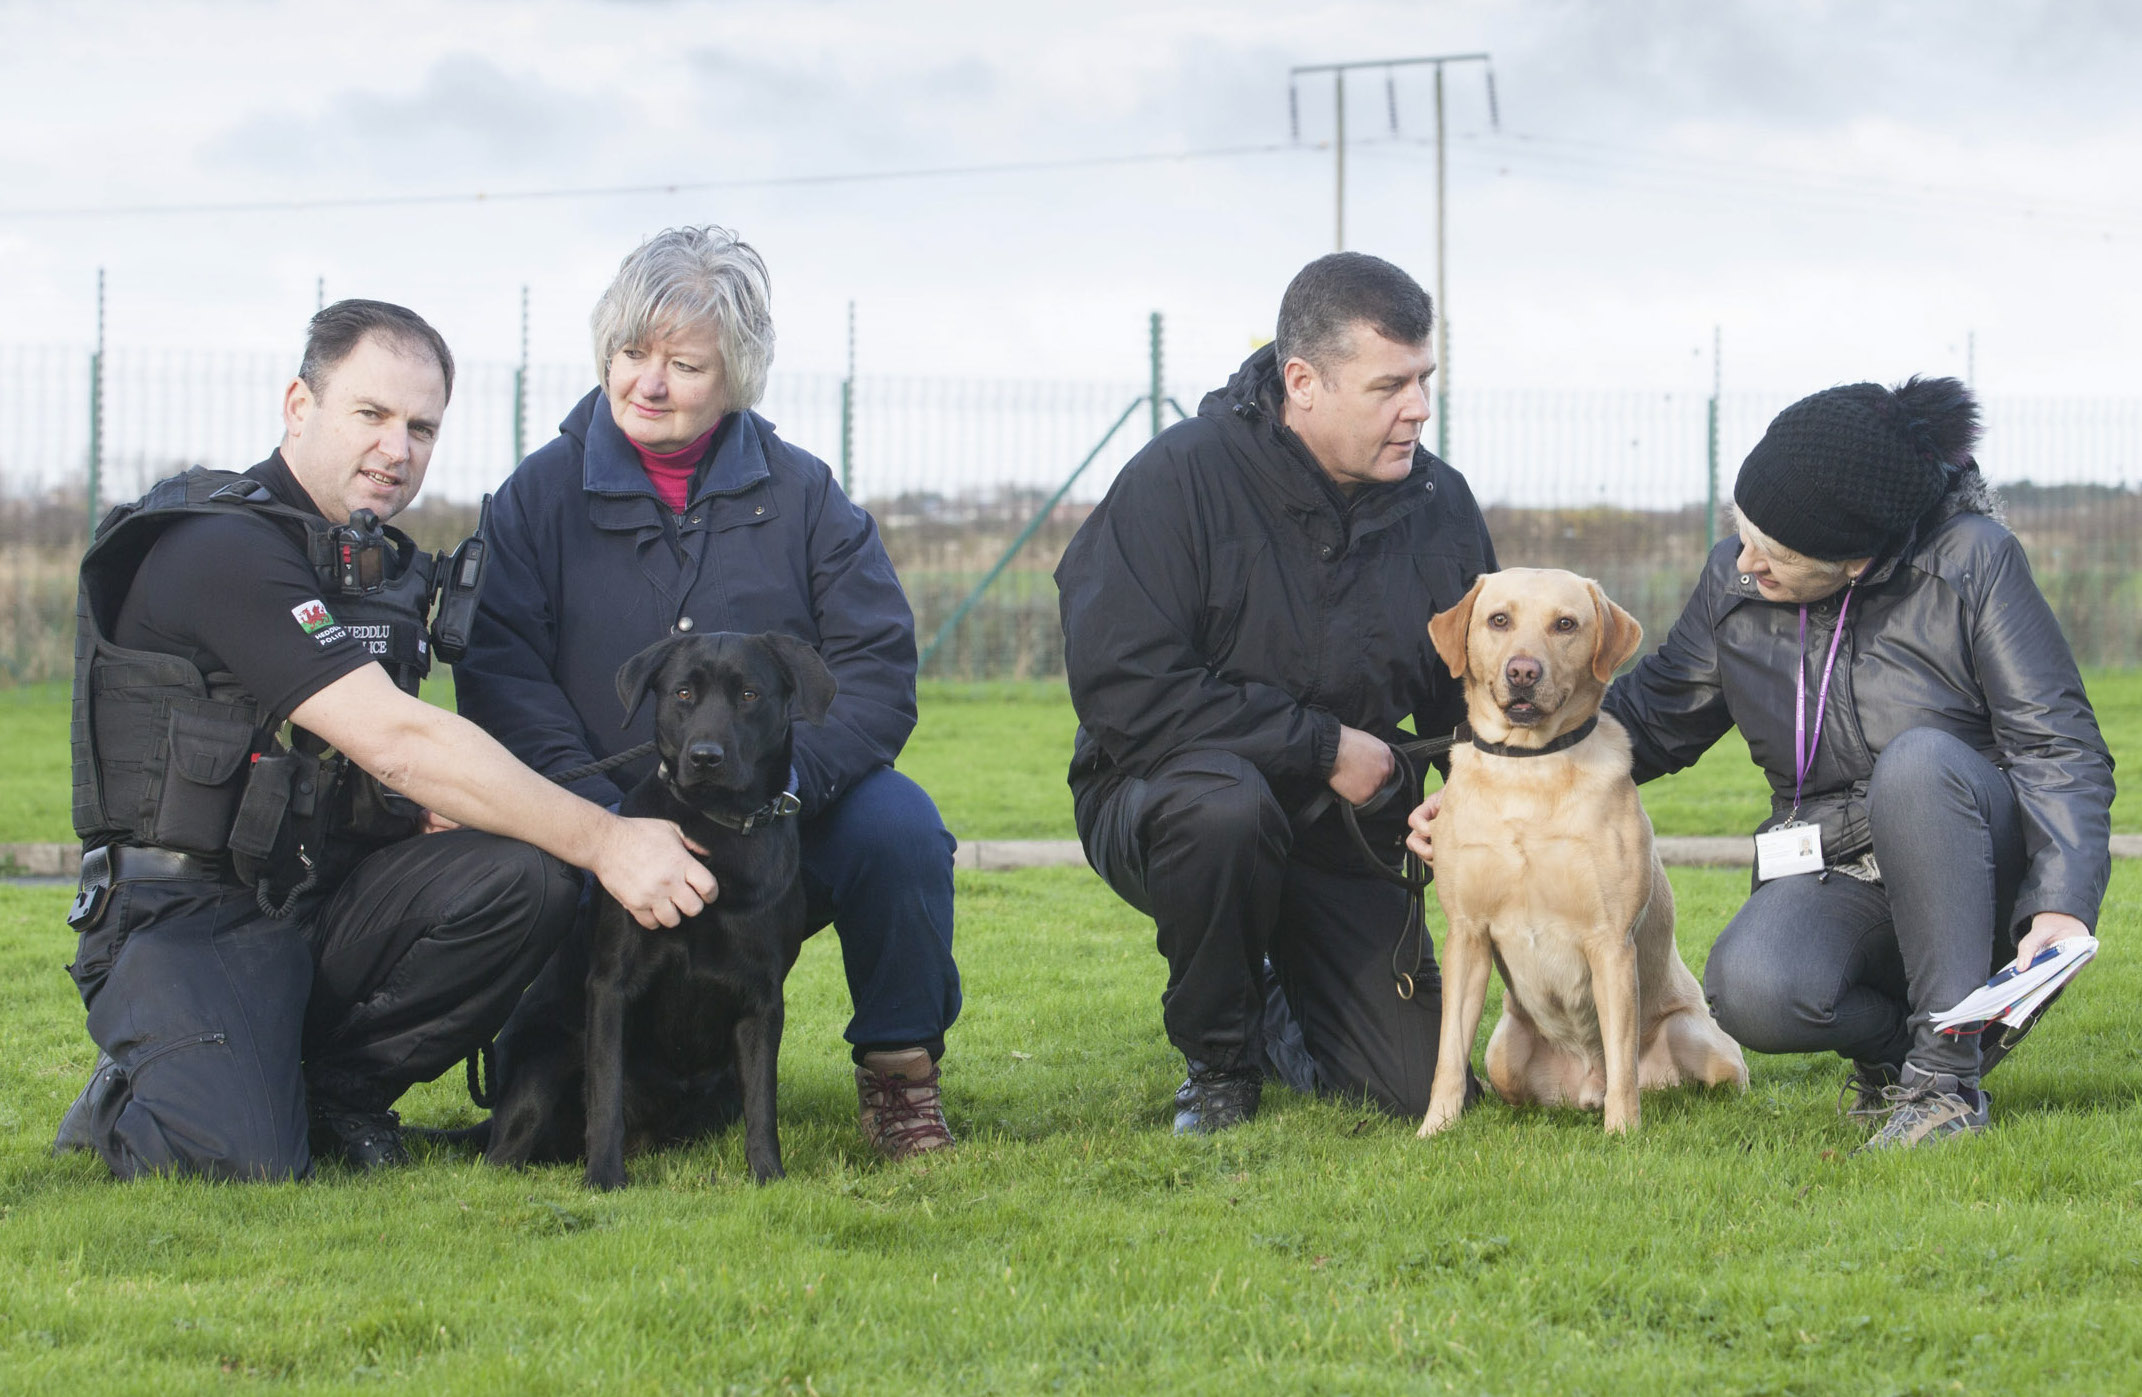 Two new police watchdogs are helping North Wales' four-legged crimefighters tokeep paw and order.